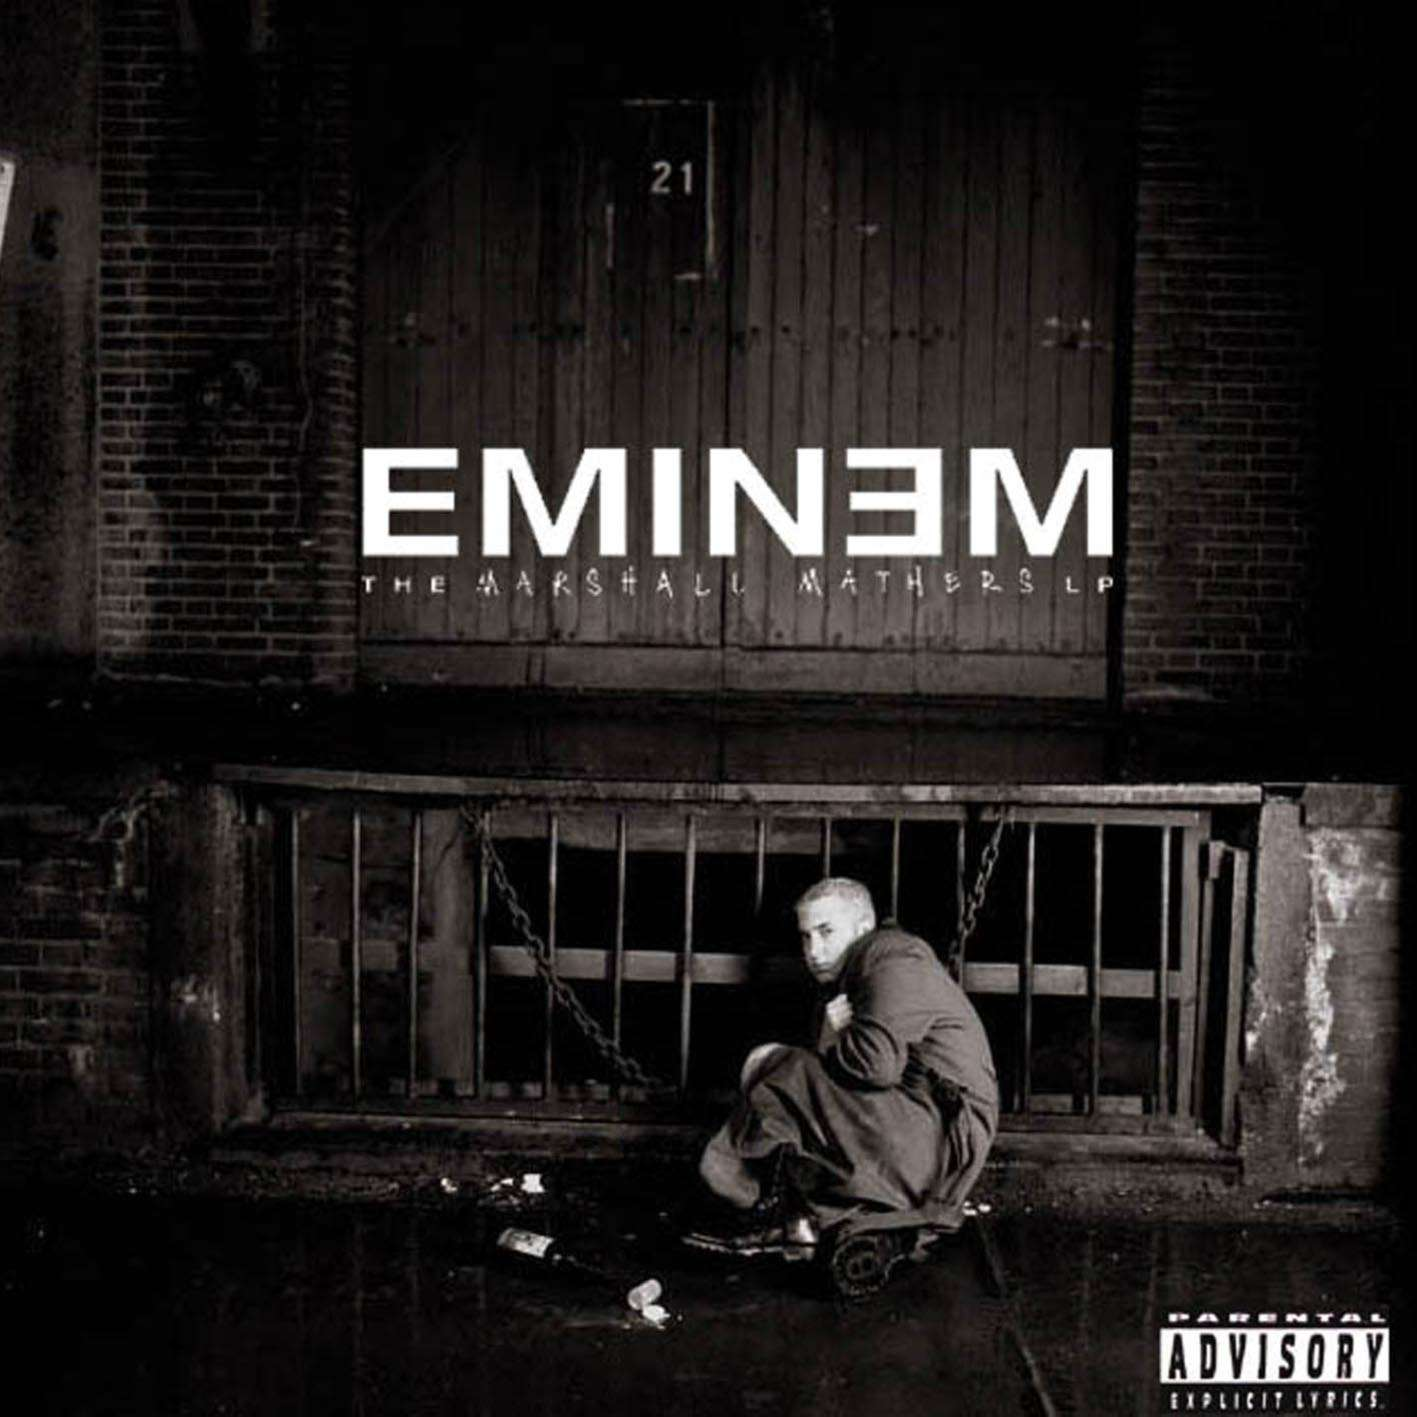 Eminem,Rolling Stone, The Marshall Mathers LP